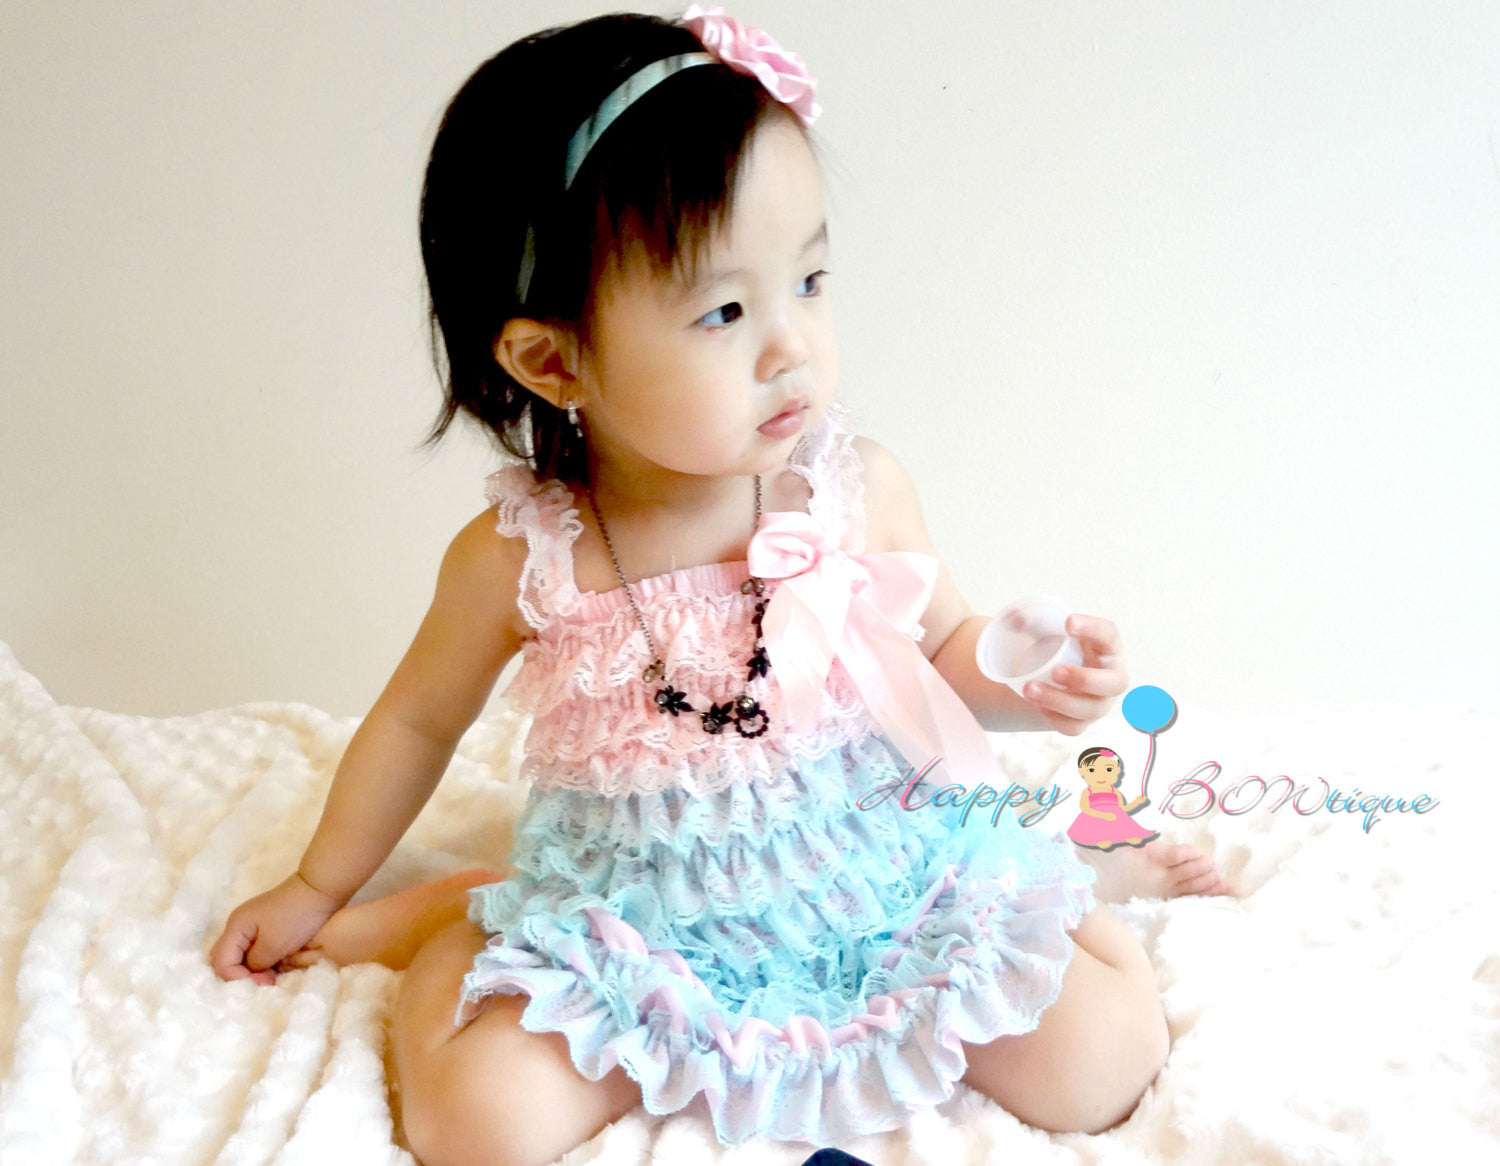 Girl Aqua Pink Petti Lace Dress ~ Baby Girl Aqua Pink Dress - Happy BOWtique - children's clothing, Baby Girl clothing